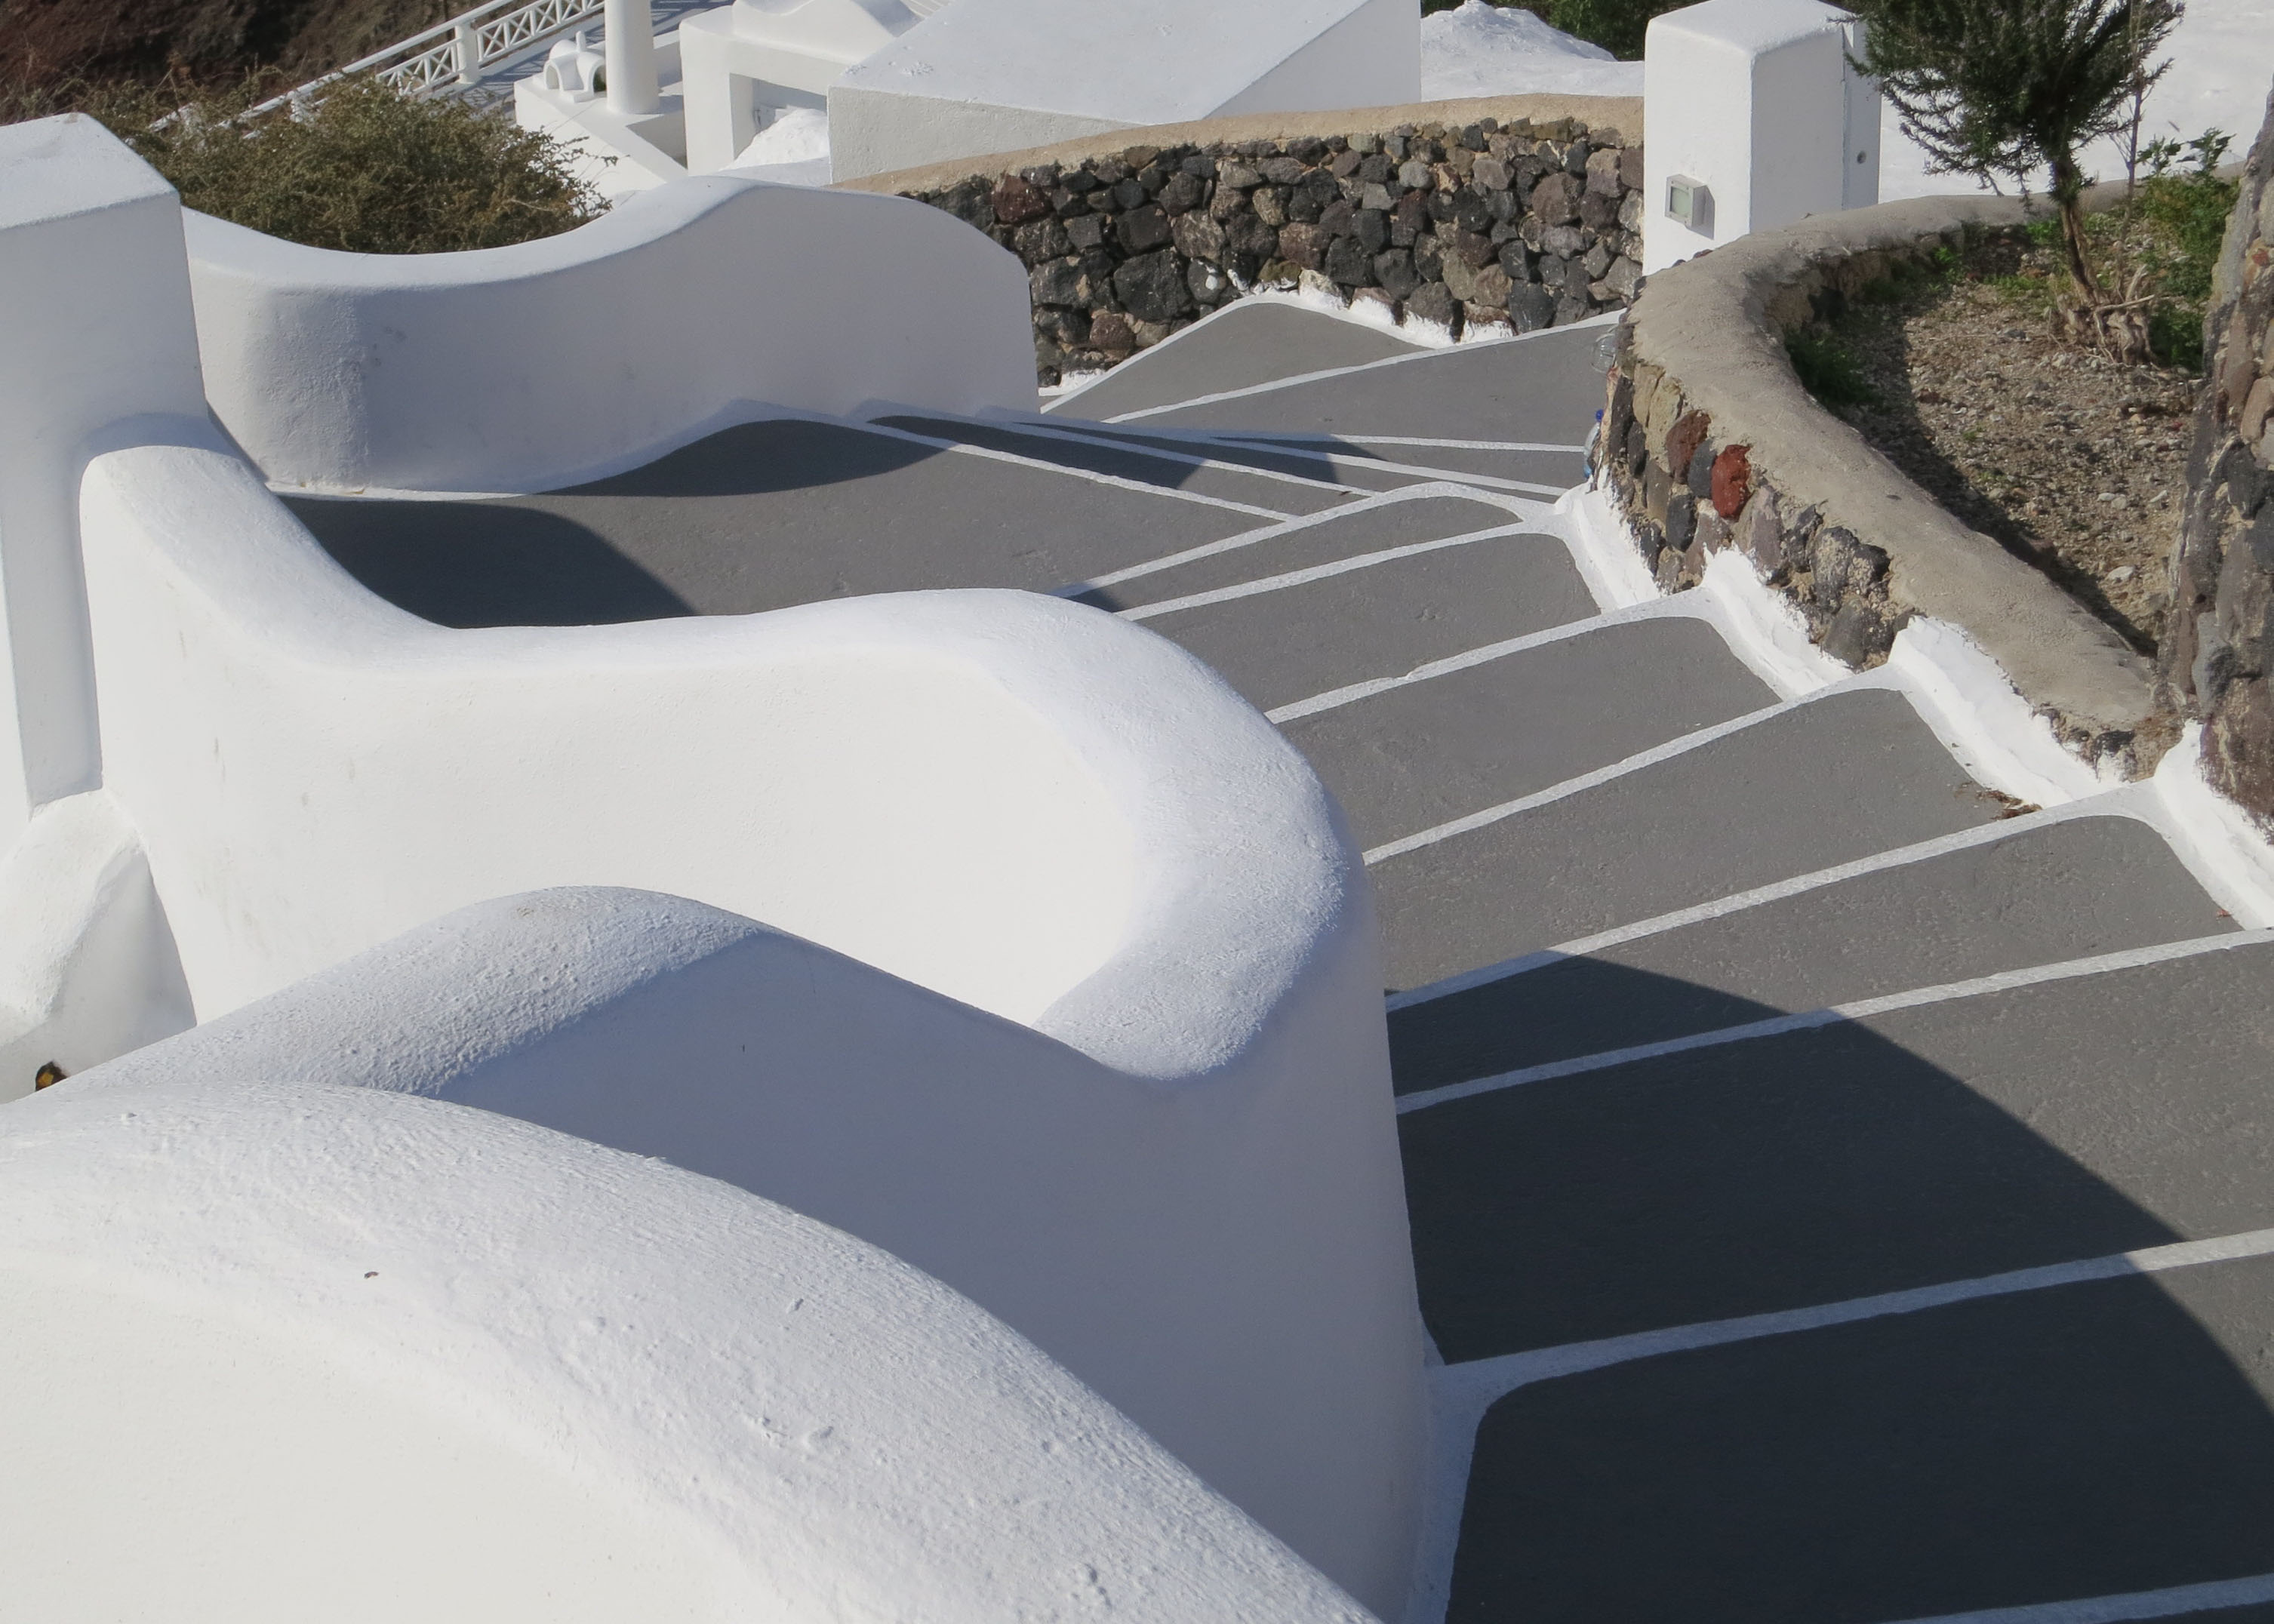 Stairways of all shapes and sizes went snaking down off the cliff in Oia, Santorini. This one was rather grand.